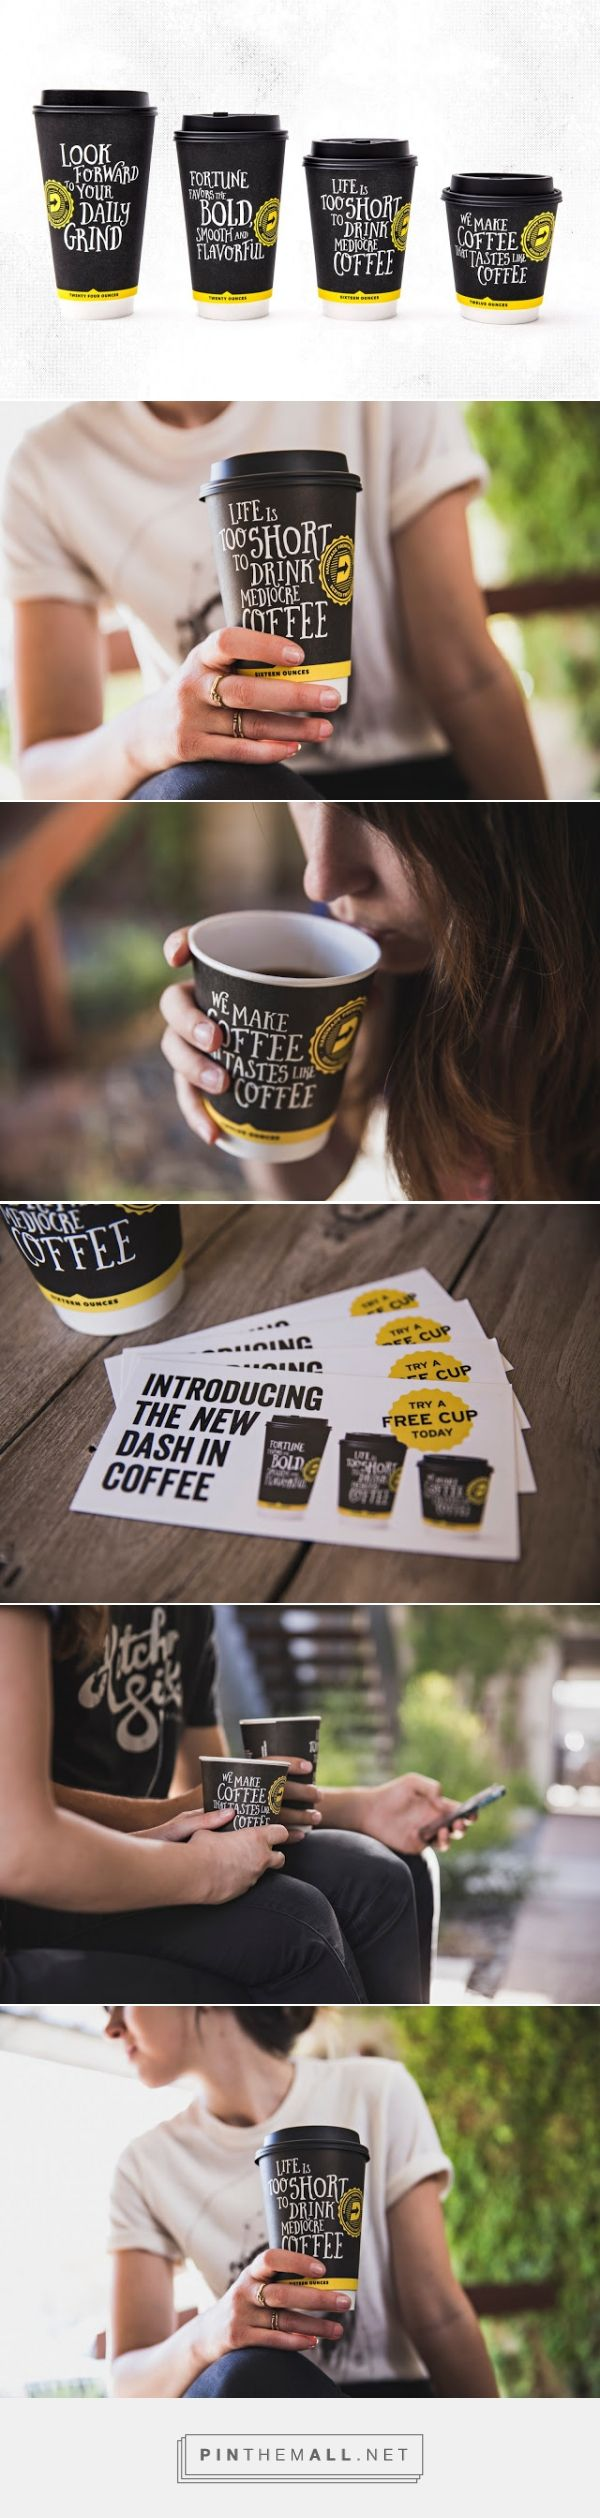 Dash In ‪#‎Coffee‬ ‪#‎packaging‬ designed by Kitchen Sink Studios, Inc. - http://www.packagingoftheworld.com/2015/06/dash-in-coffee.html